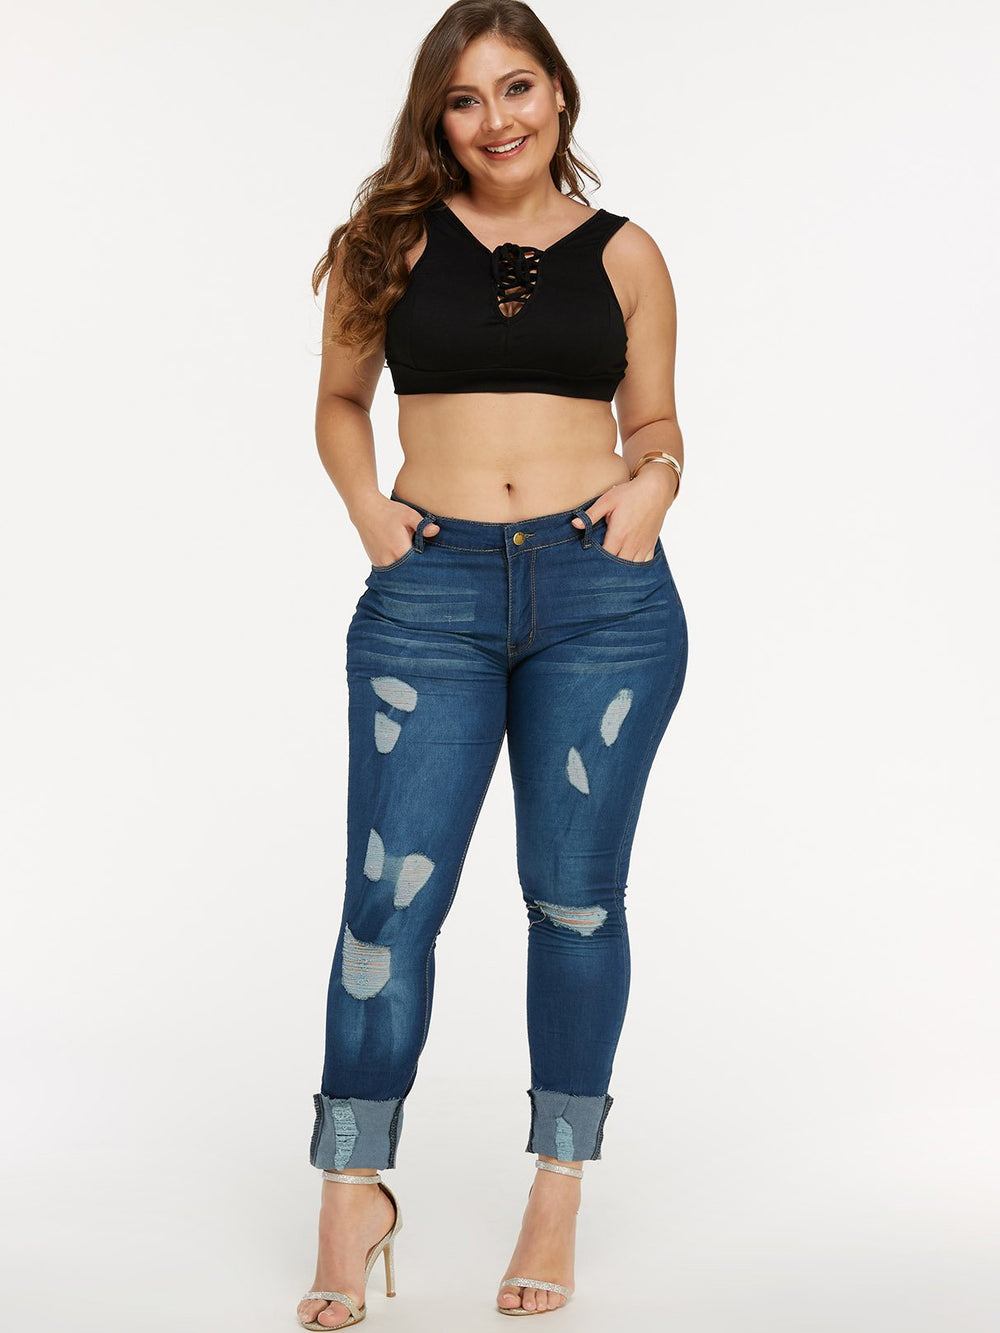 Random Ripped Zip Back Bodycon Dark Blue Plus Size Bottoms